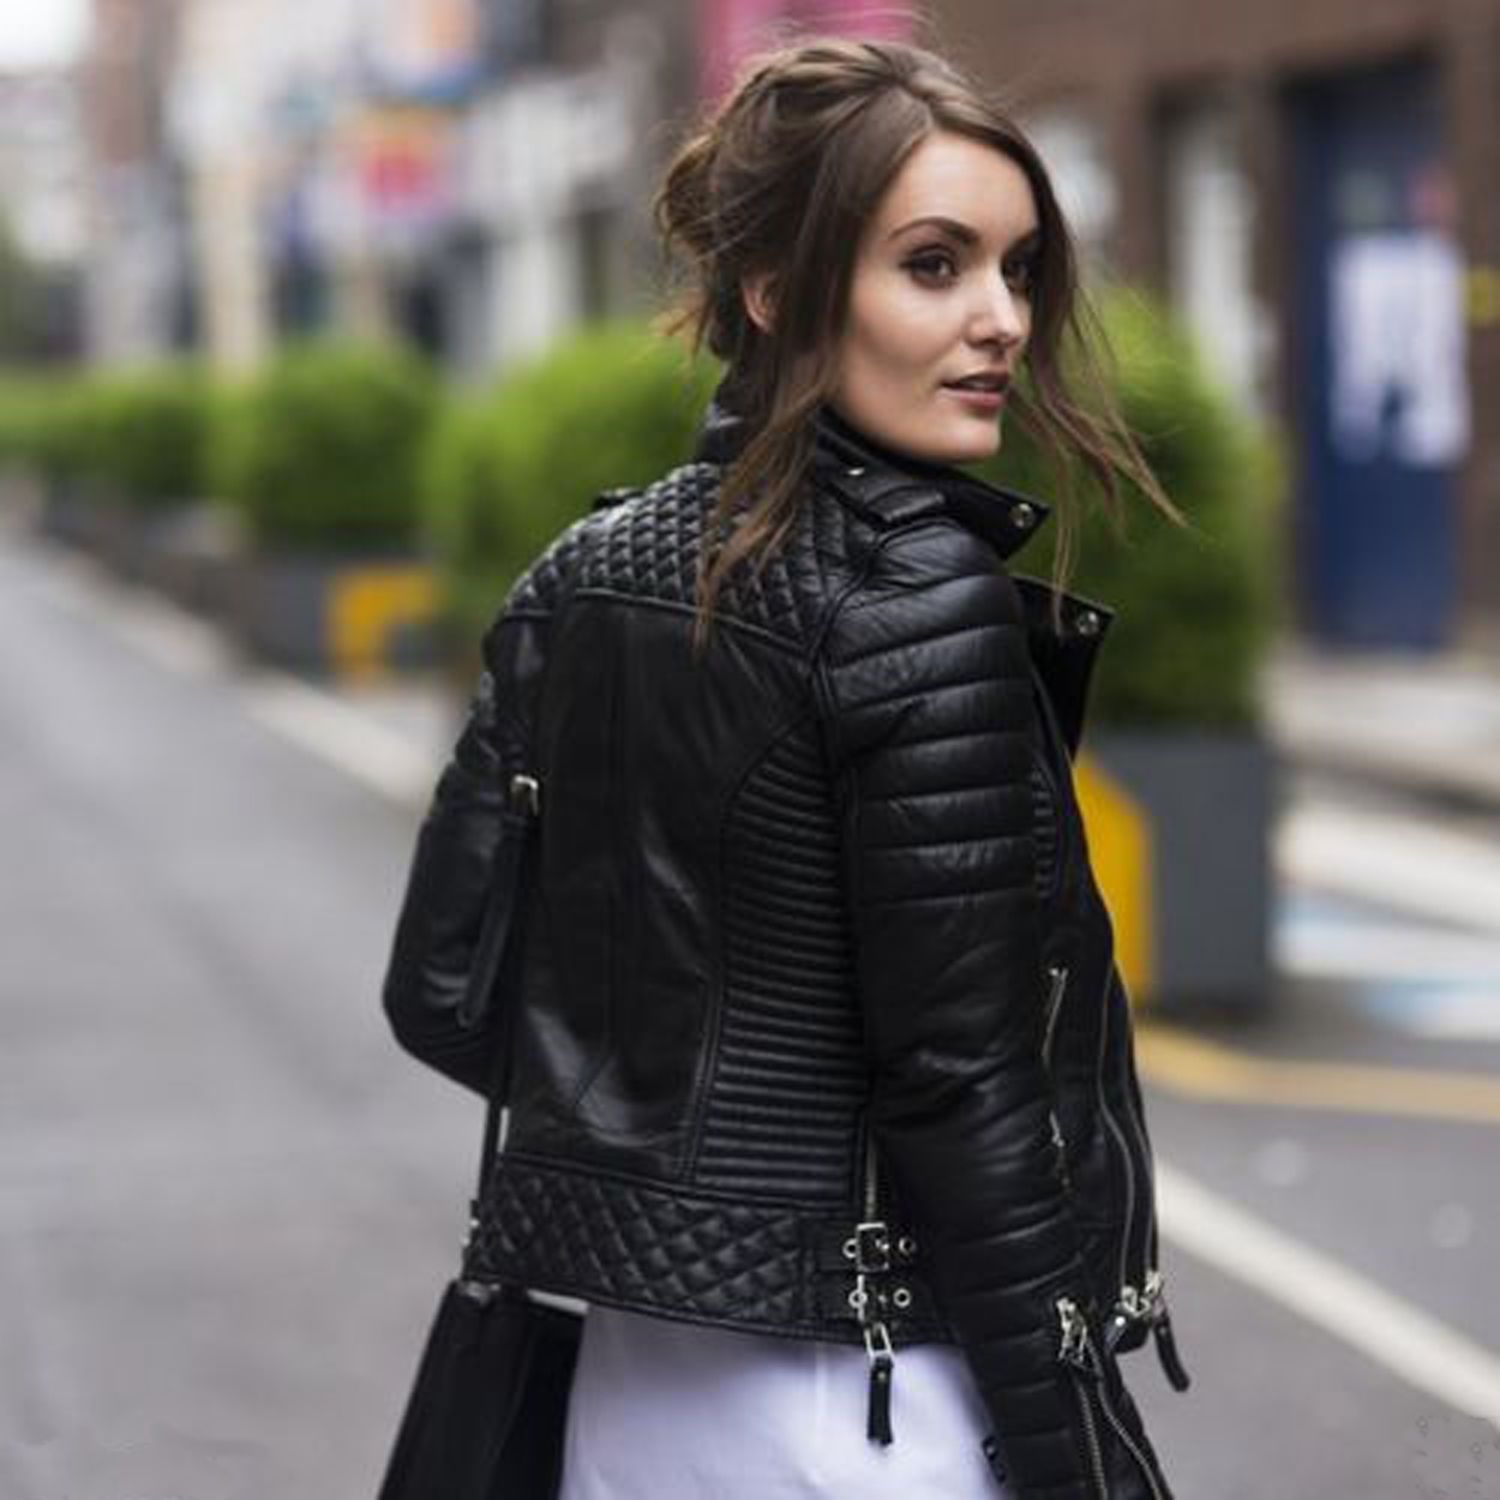 Xtreemleather Present The Best Quality Leather Jacket For